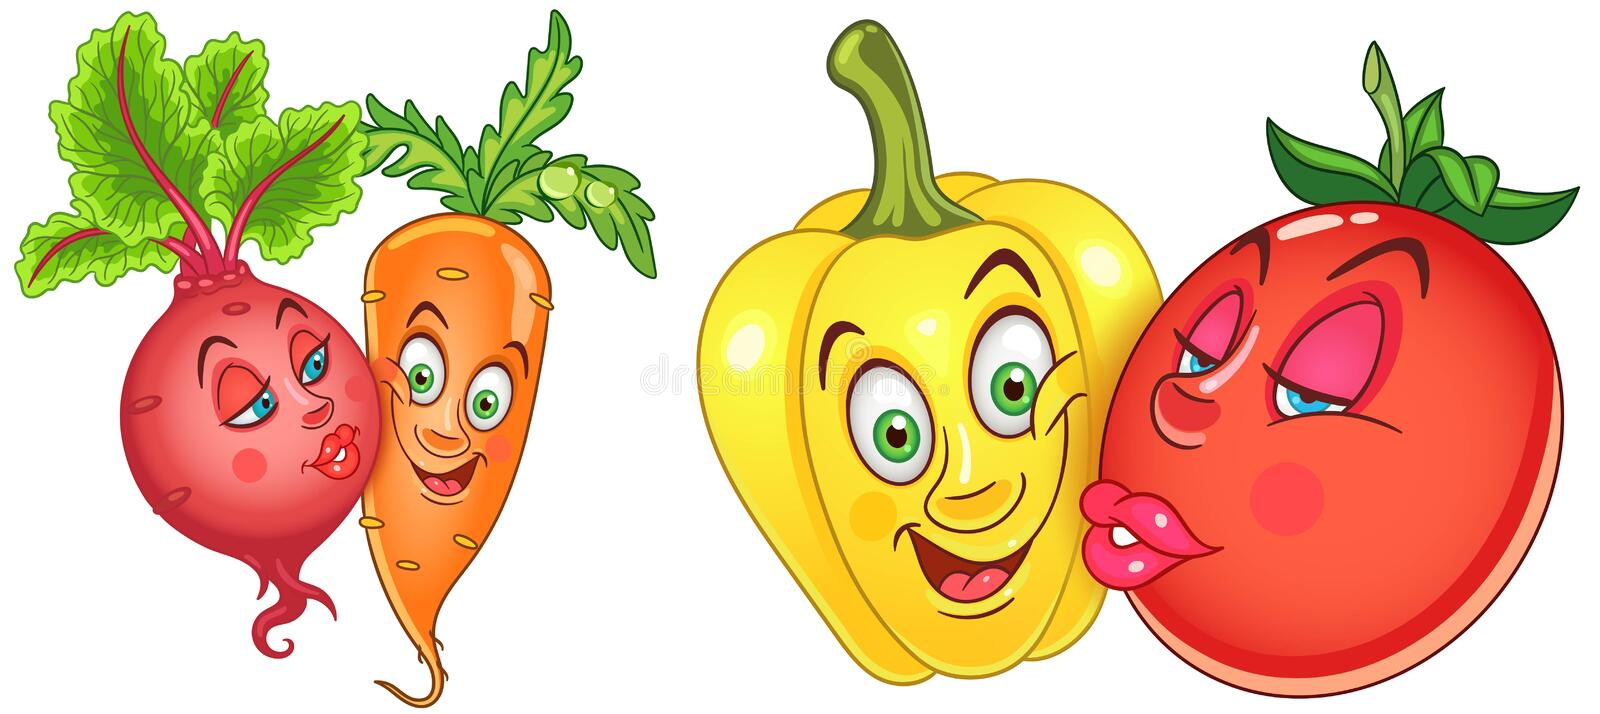 Cartoon Vegetables in Love royalty free stock photo